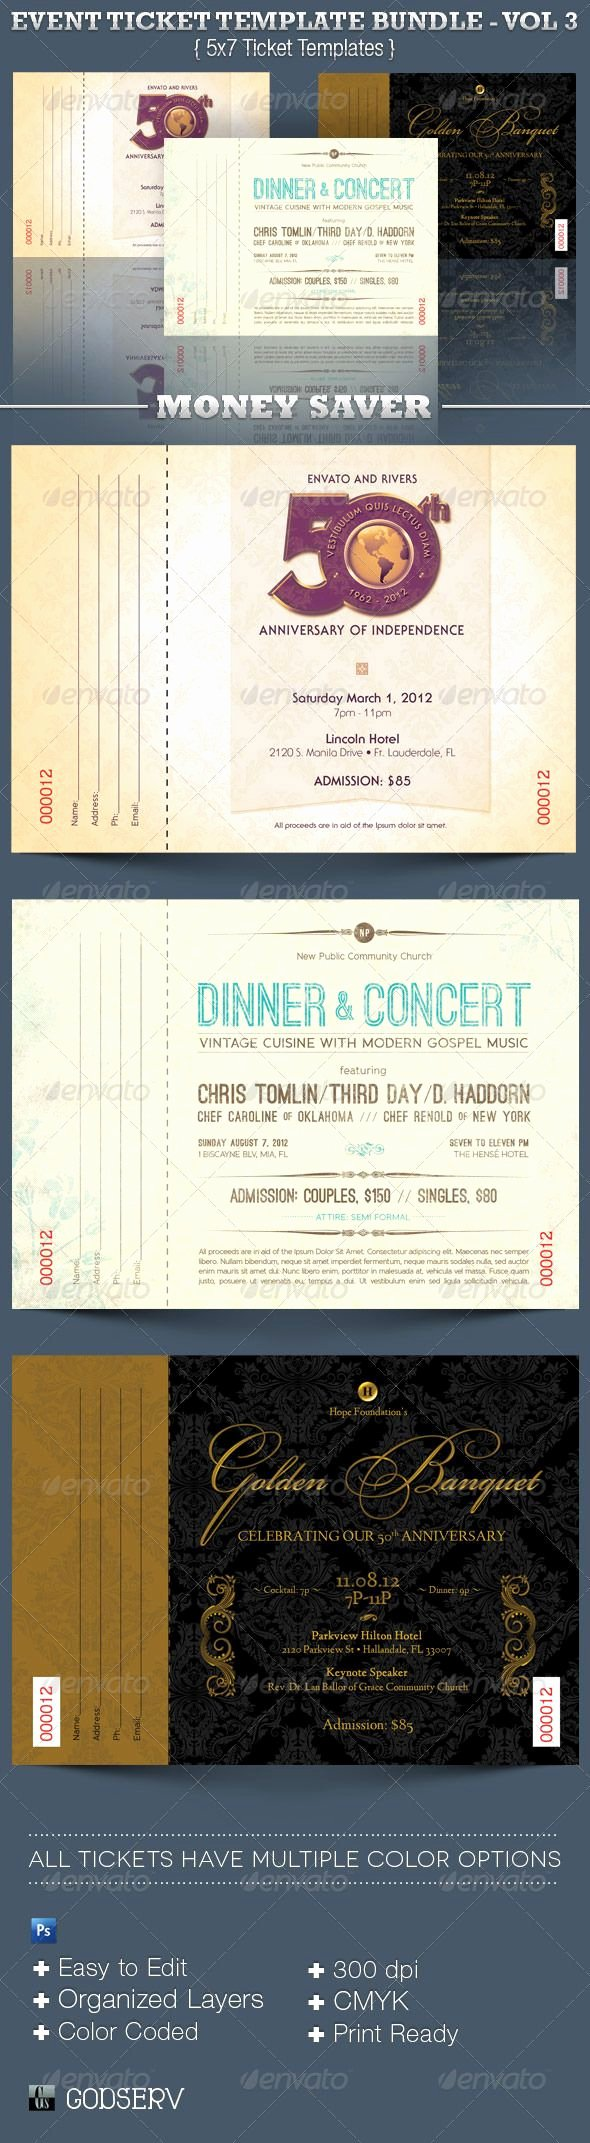 Event Ticket Template Photoshop Luxury event Ticket Template Bundle Volume 3